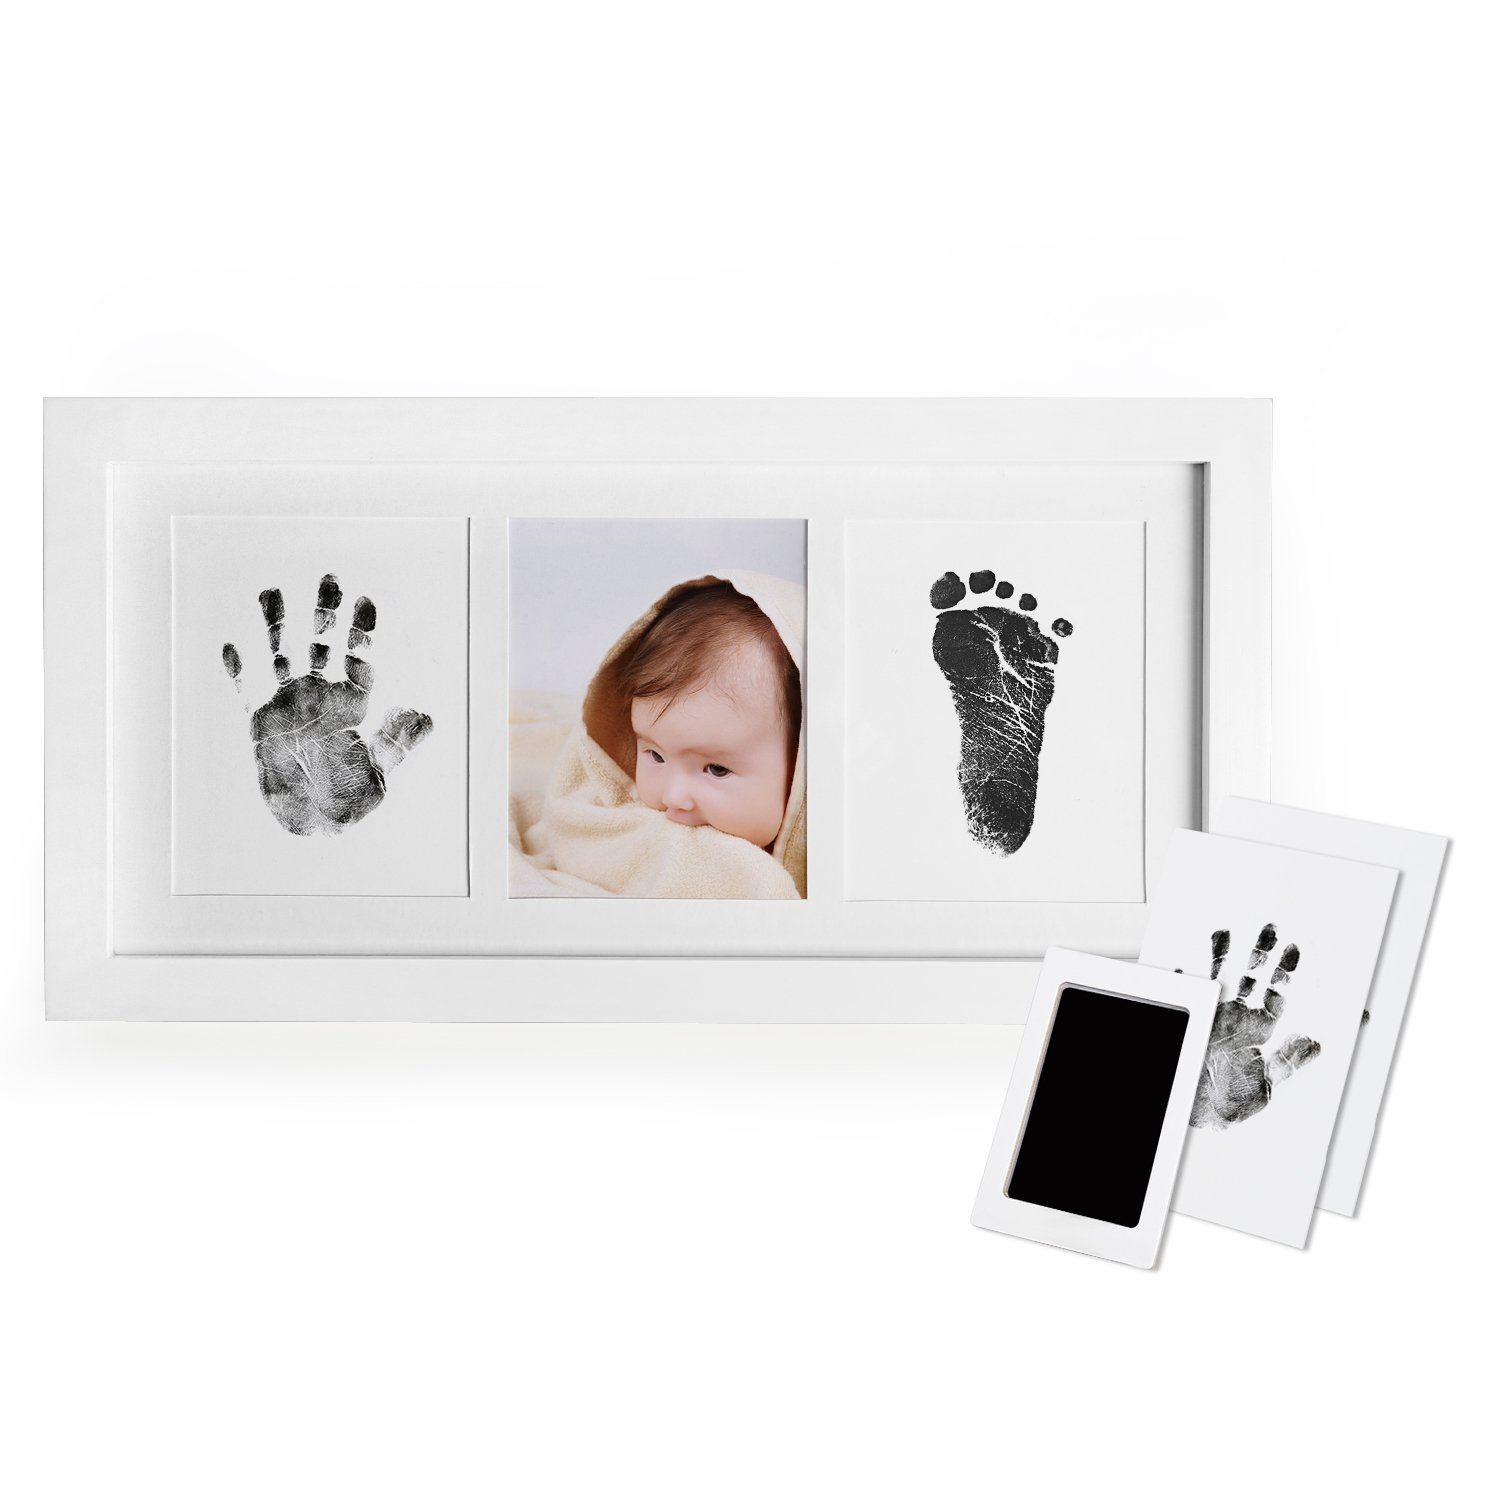 Norjews Baby Handprint and Footprint Photo Frame Kit for Newborn Boys and Girls, Prints Paper and Clean Touch Ink Pad to Create Baby Hand and Foot Prints, Amazing Baby Shower Gifts